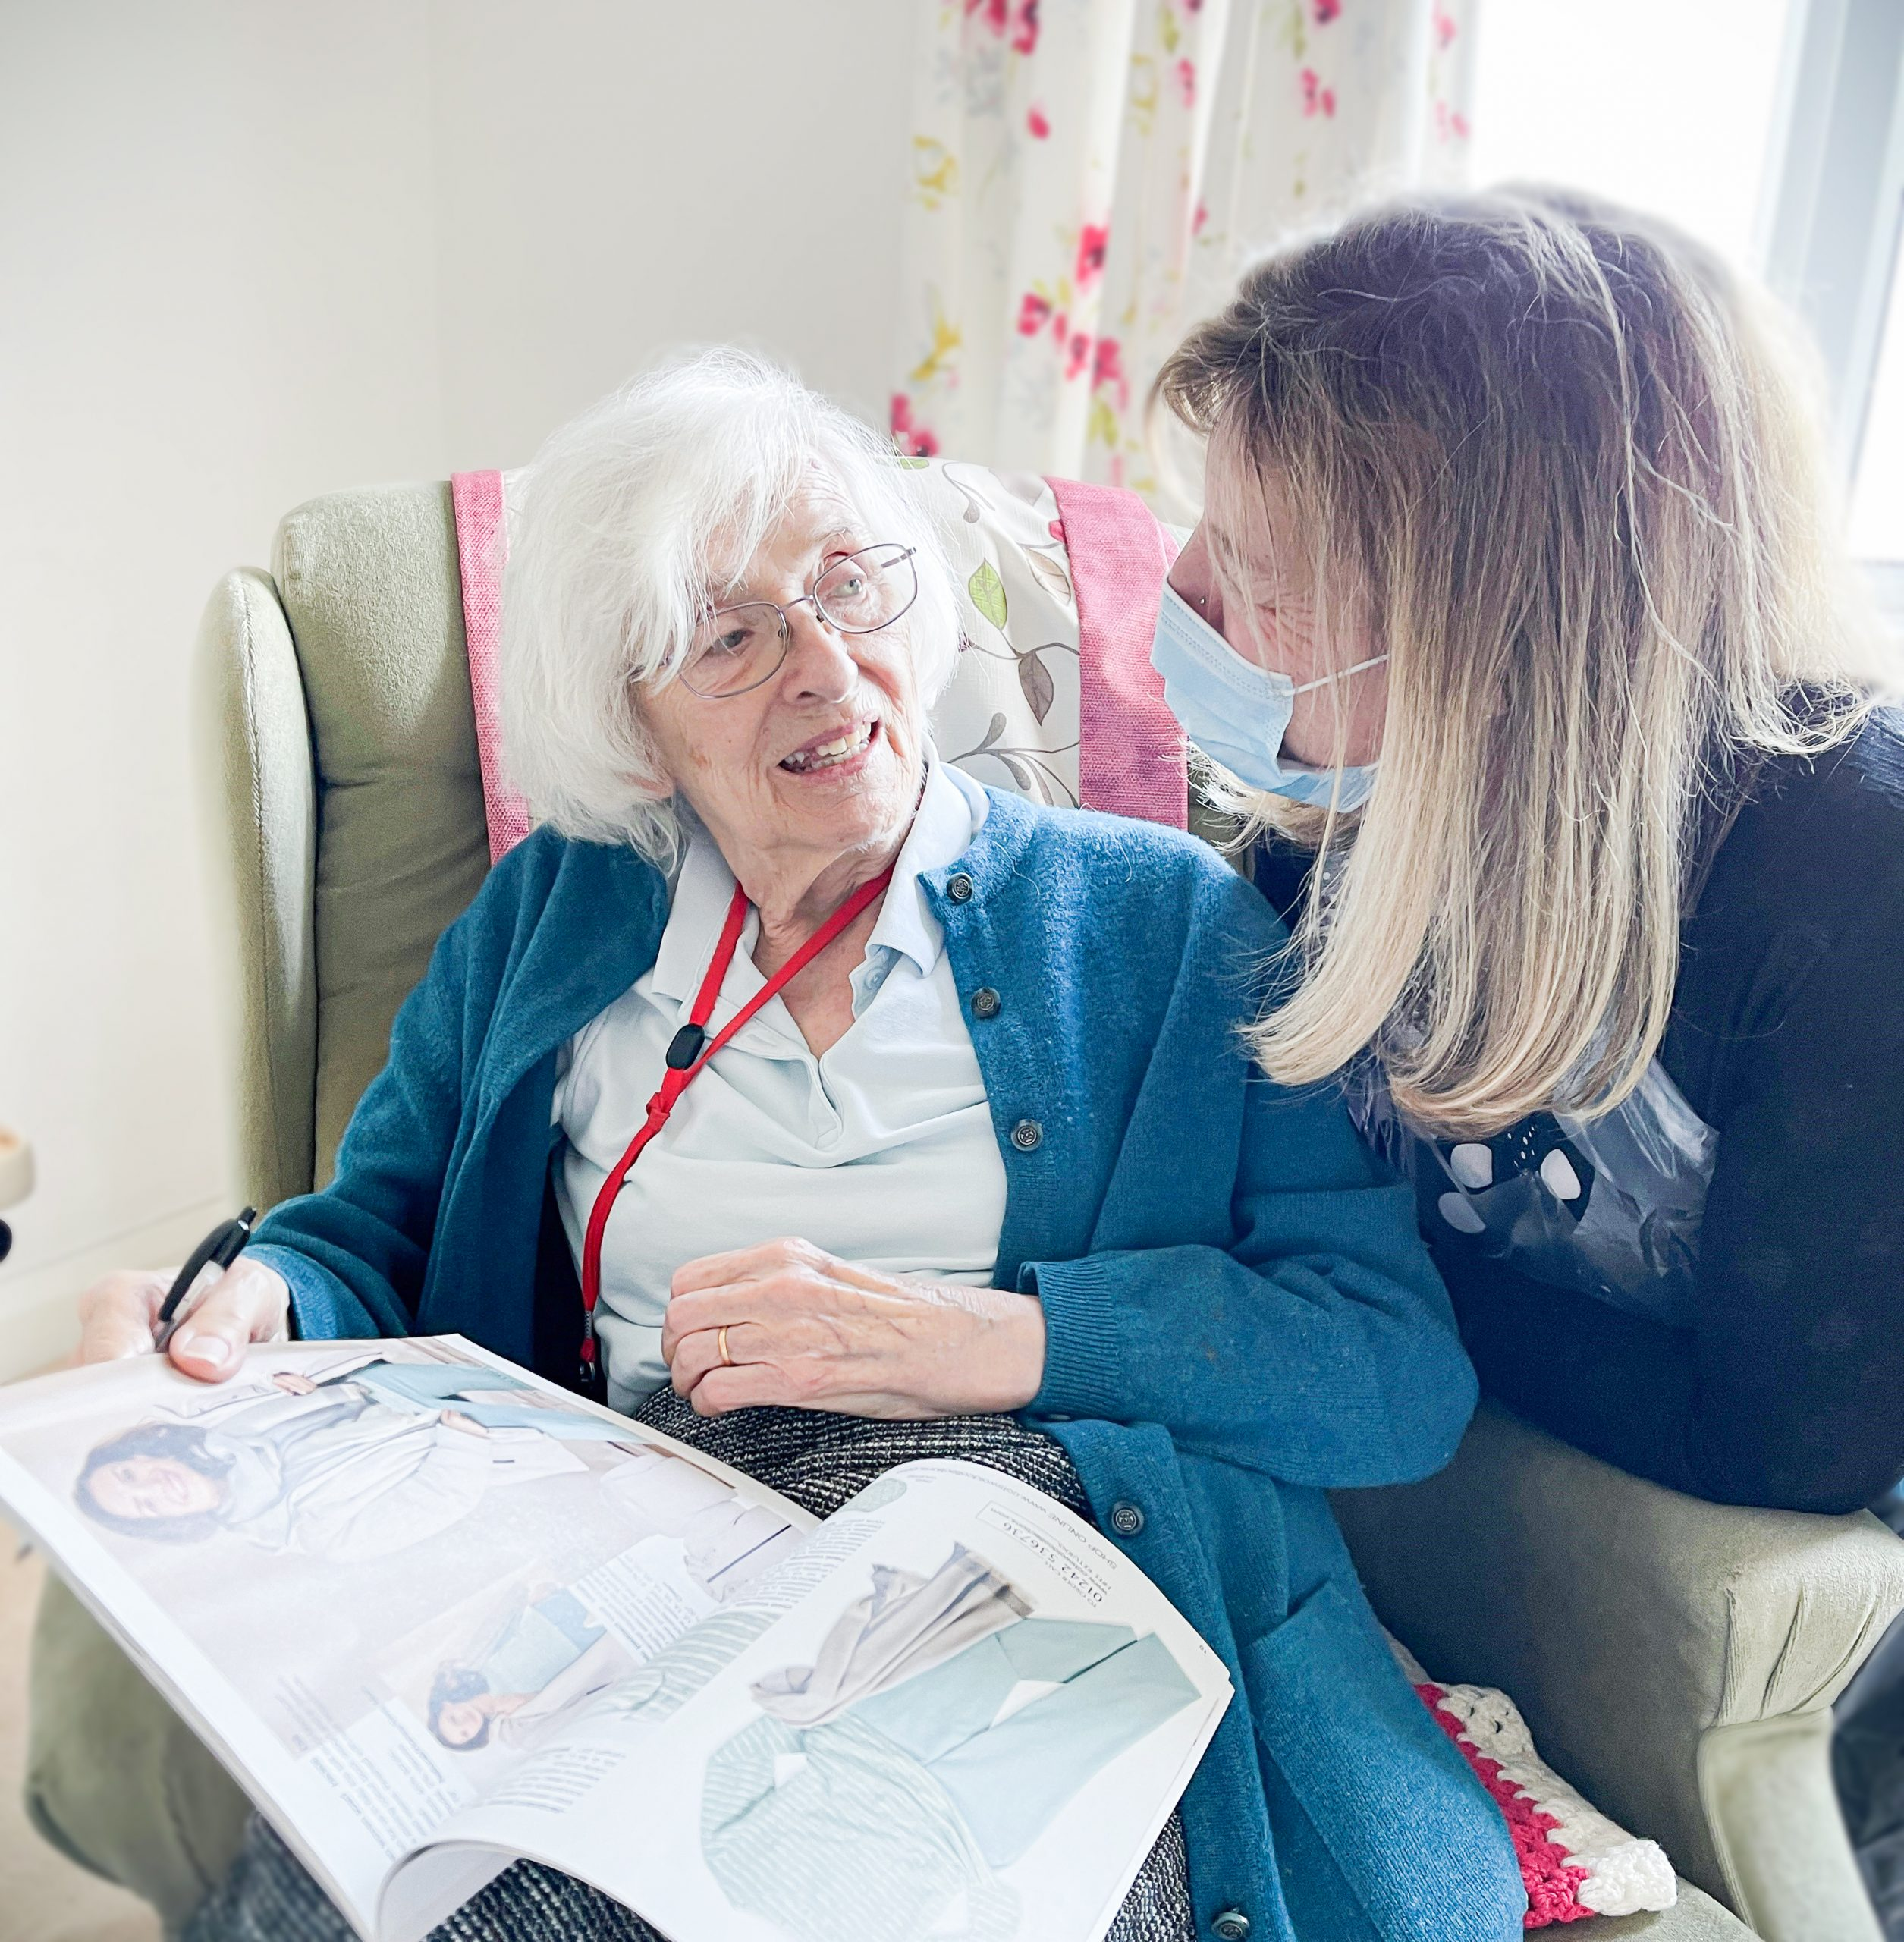 Respite care resident Felicity with Care Home Manager Jan sat together reading a magazine